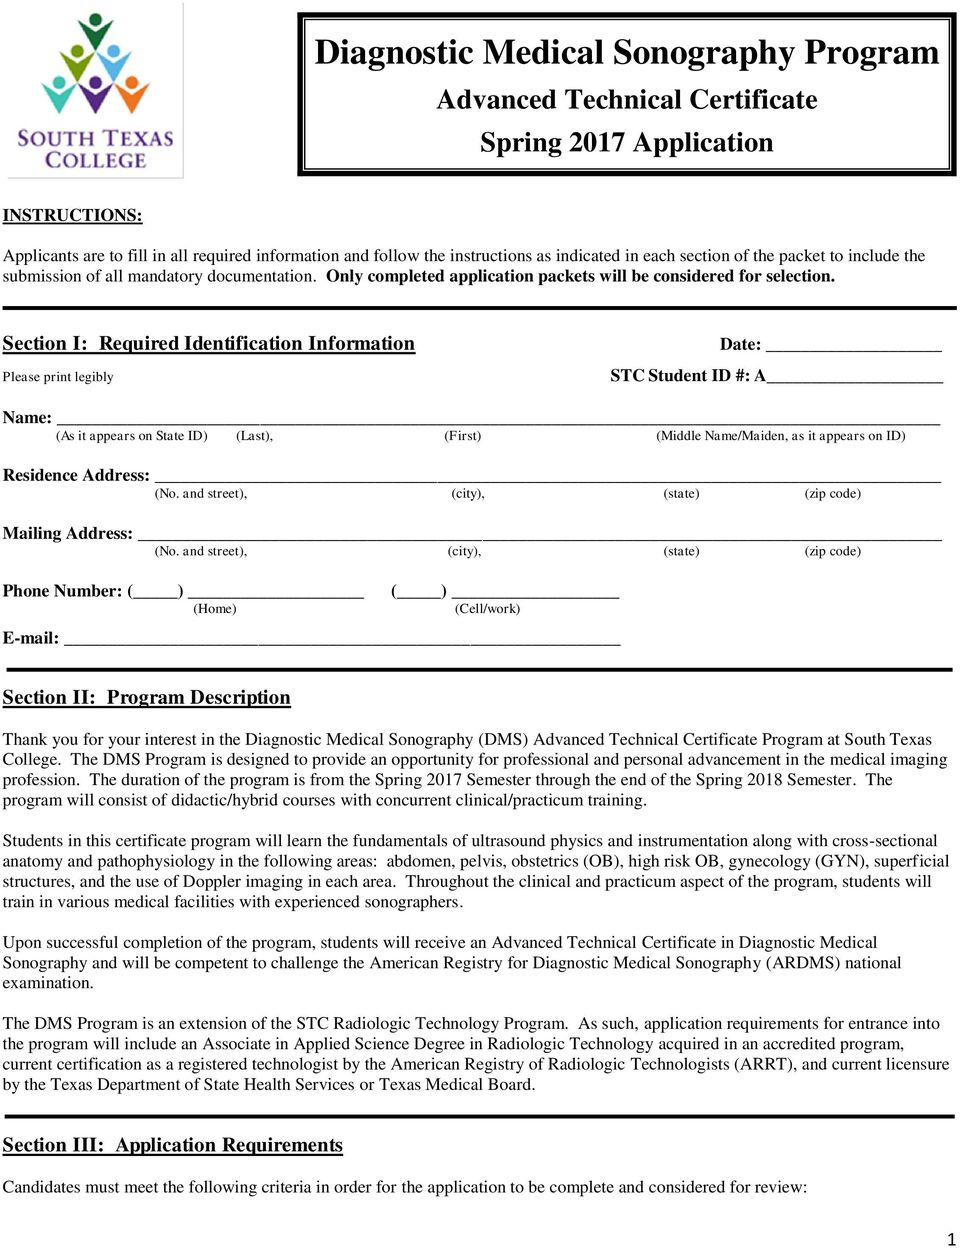 Sectin I: Required Identificatin Infrmatin Please print legibly Date: STC Student ID #: A Name: (As it appears n State ID) (Last), (First) (Middle Name/Maiden, as it appears n ID) Residence Address: